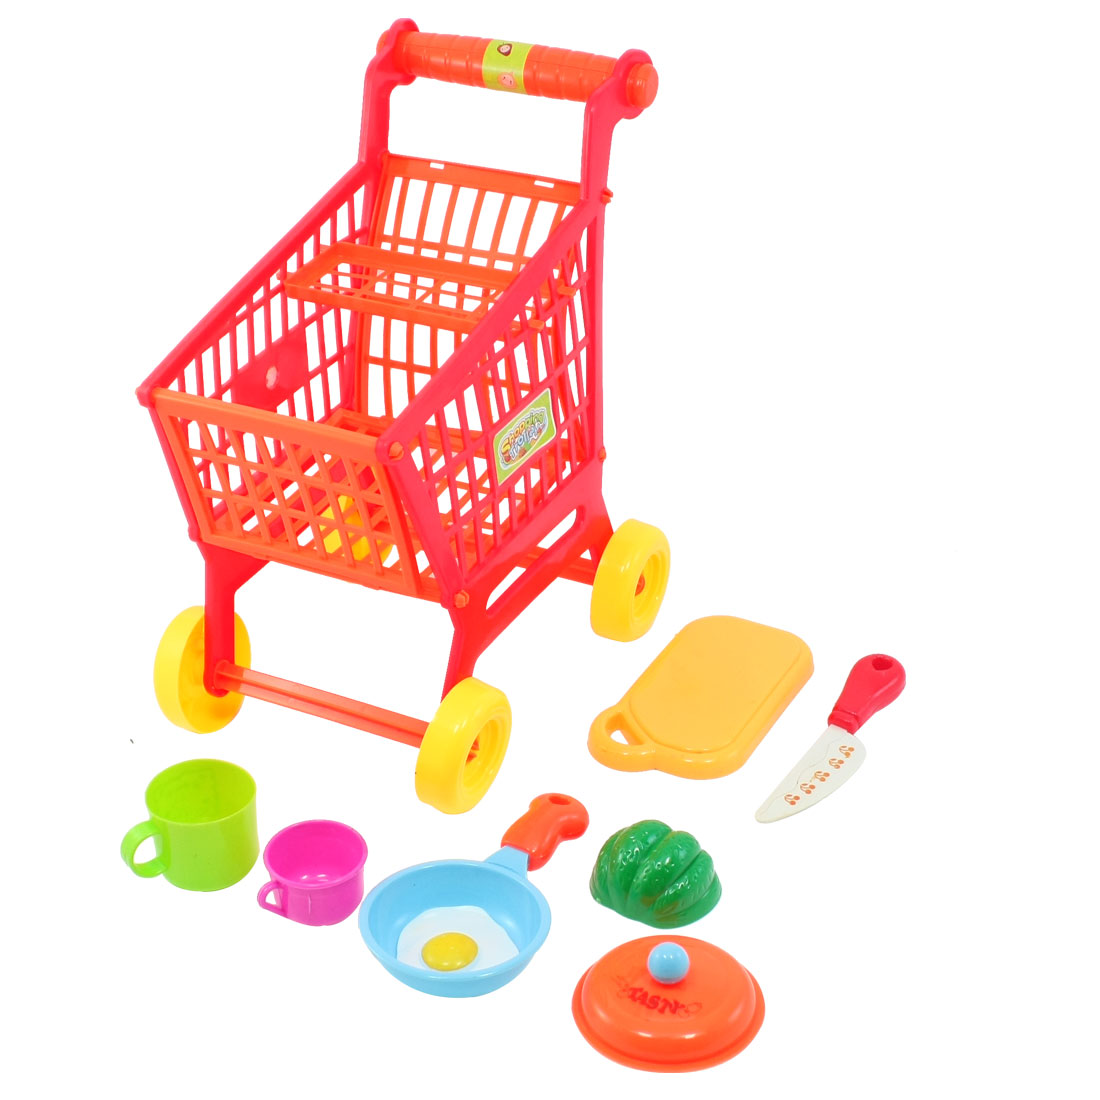 Kids Colorful Plastic Kitchenware Assemble Trolley Shopping Cart Toys